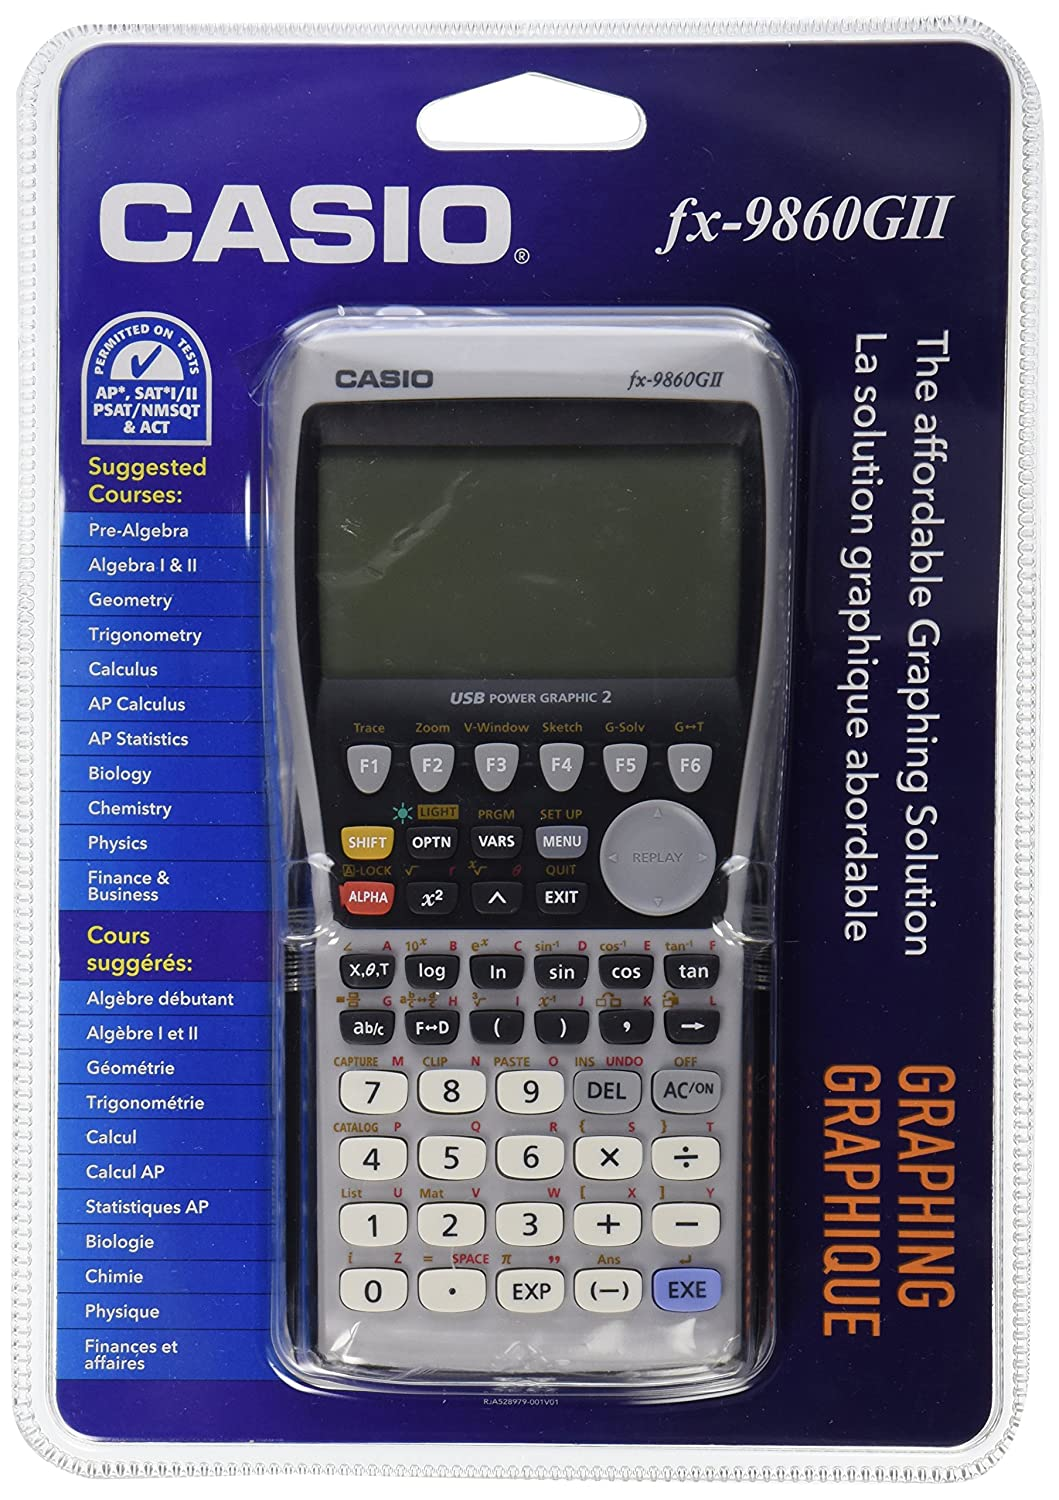 Amazon.com: Casio fx-9860GII Graphing Calculator, Black: Office Products